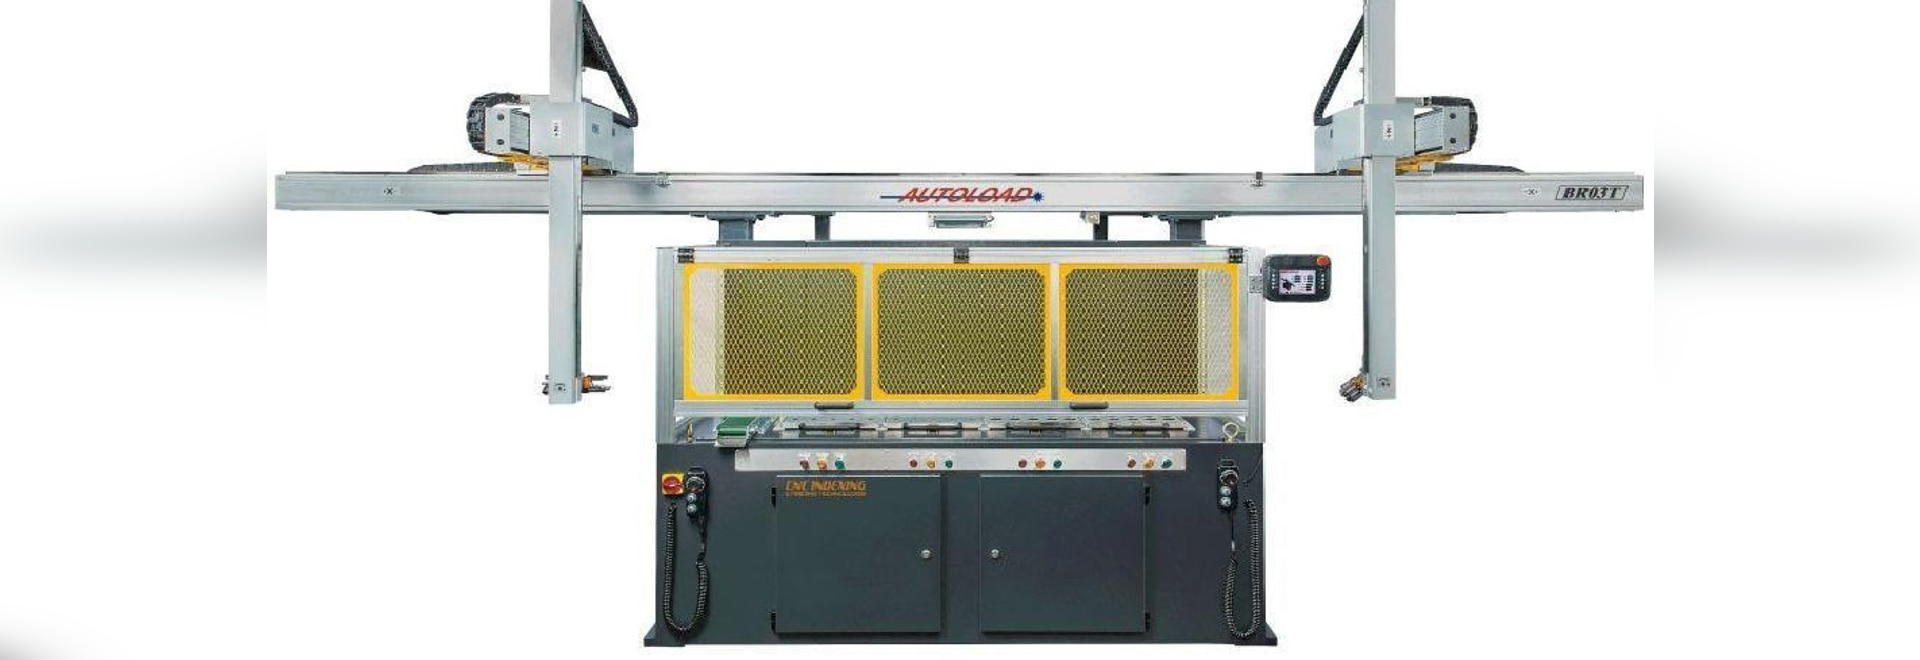 Gantry Loading System Can Quickly Load Twin-Spindle Lathes